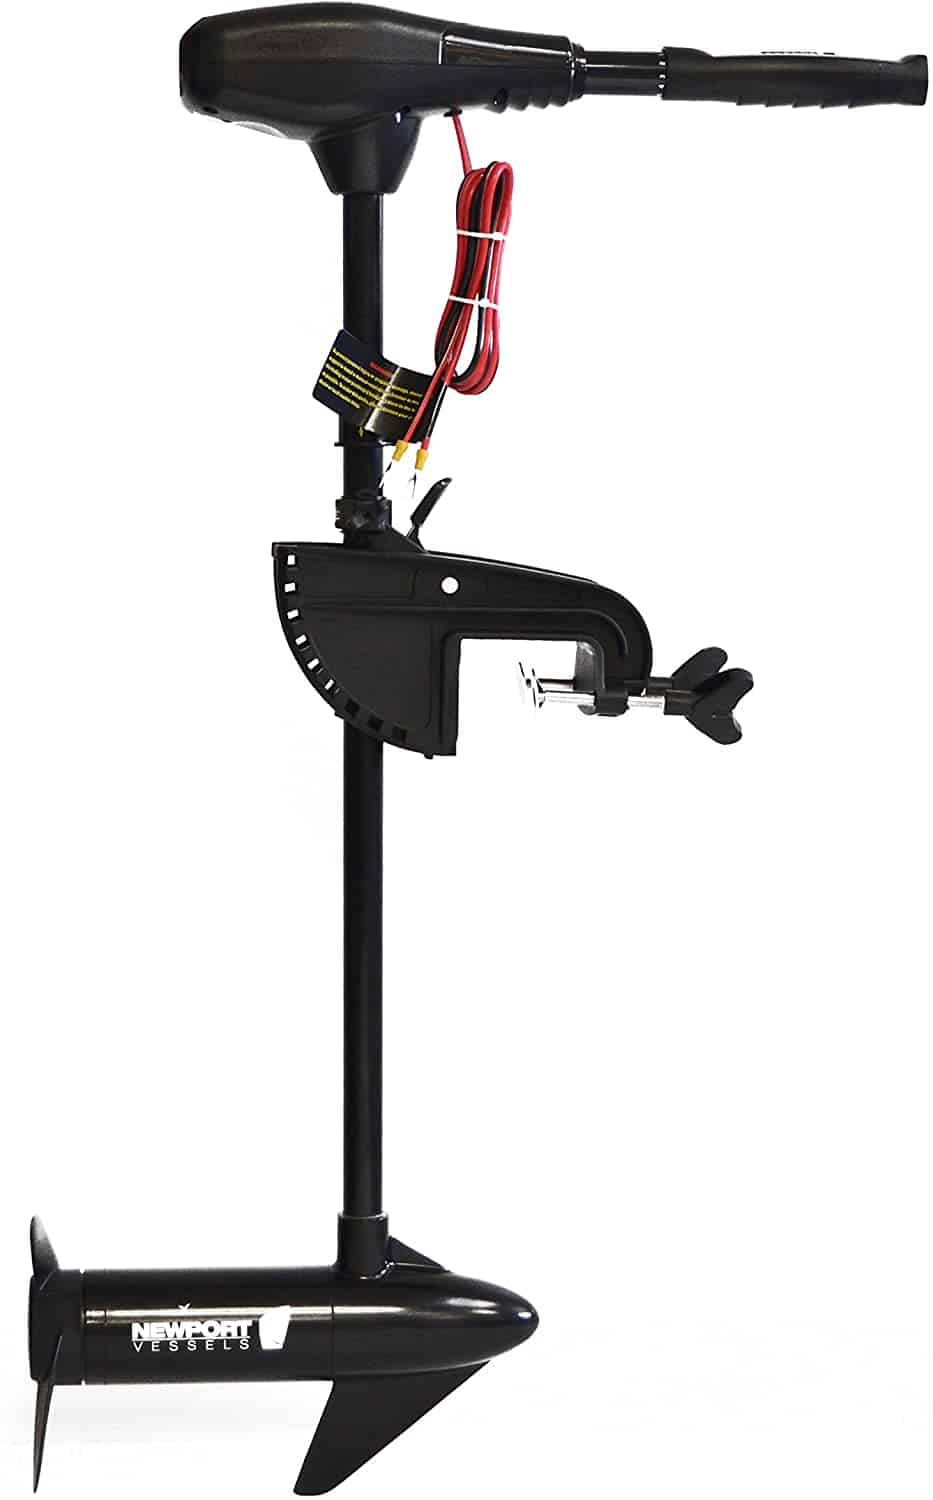 NV Electric Trolling Motor (46 lb) by Newport Vessels